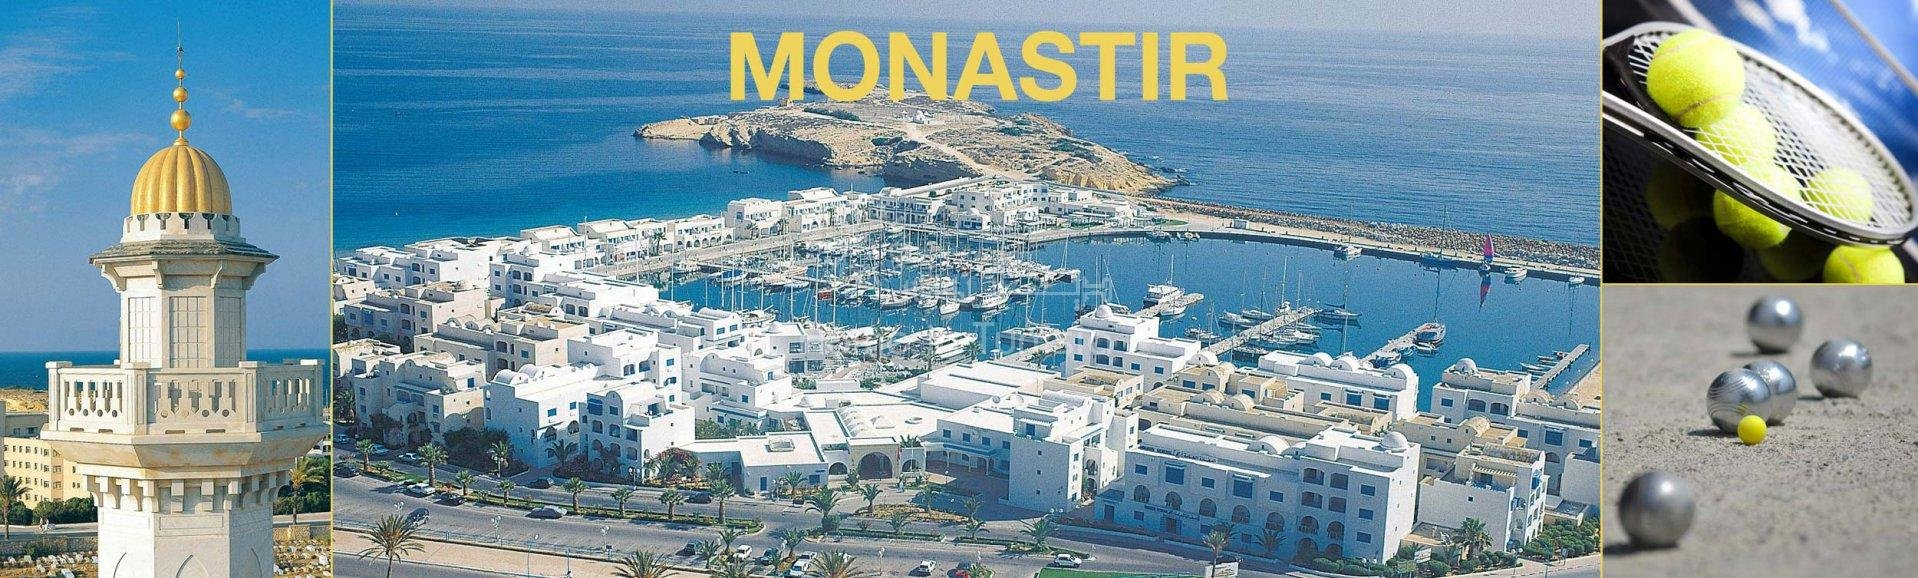 Sale Building land - Monastir - Tunisia